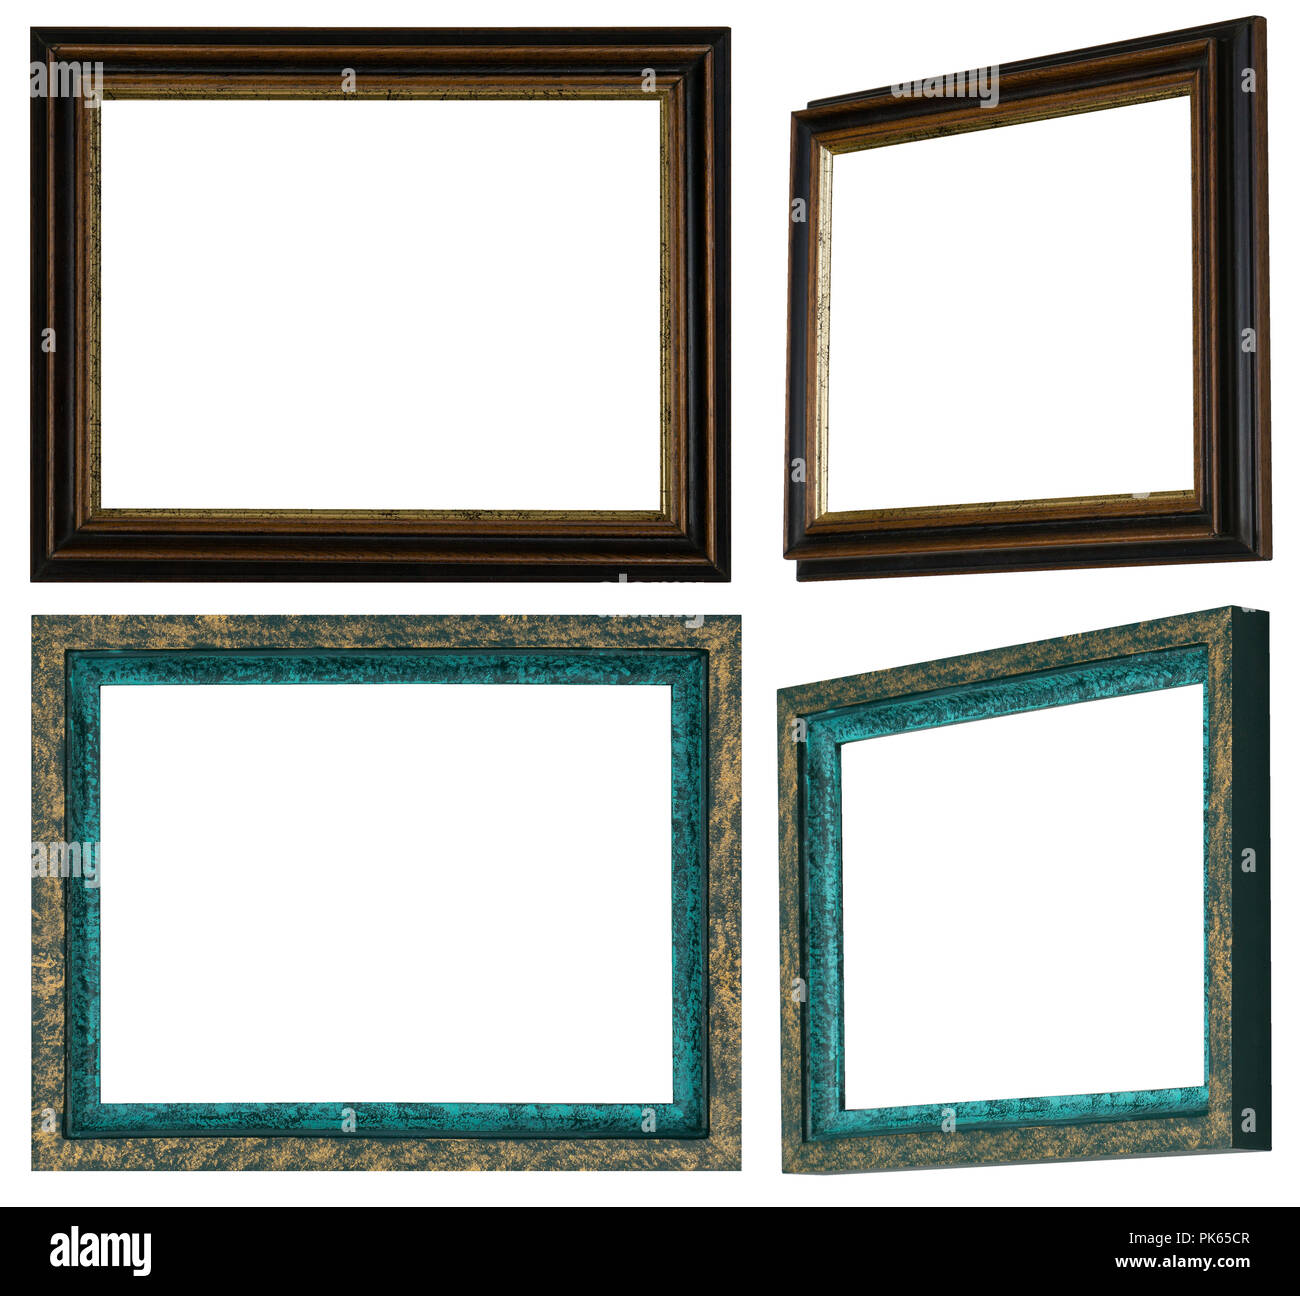 Two Self Made And Hand Painted Picture Frames In Two Versions Stock